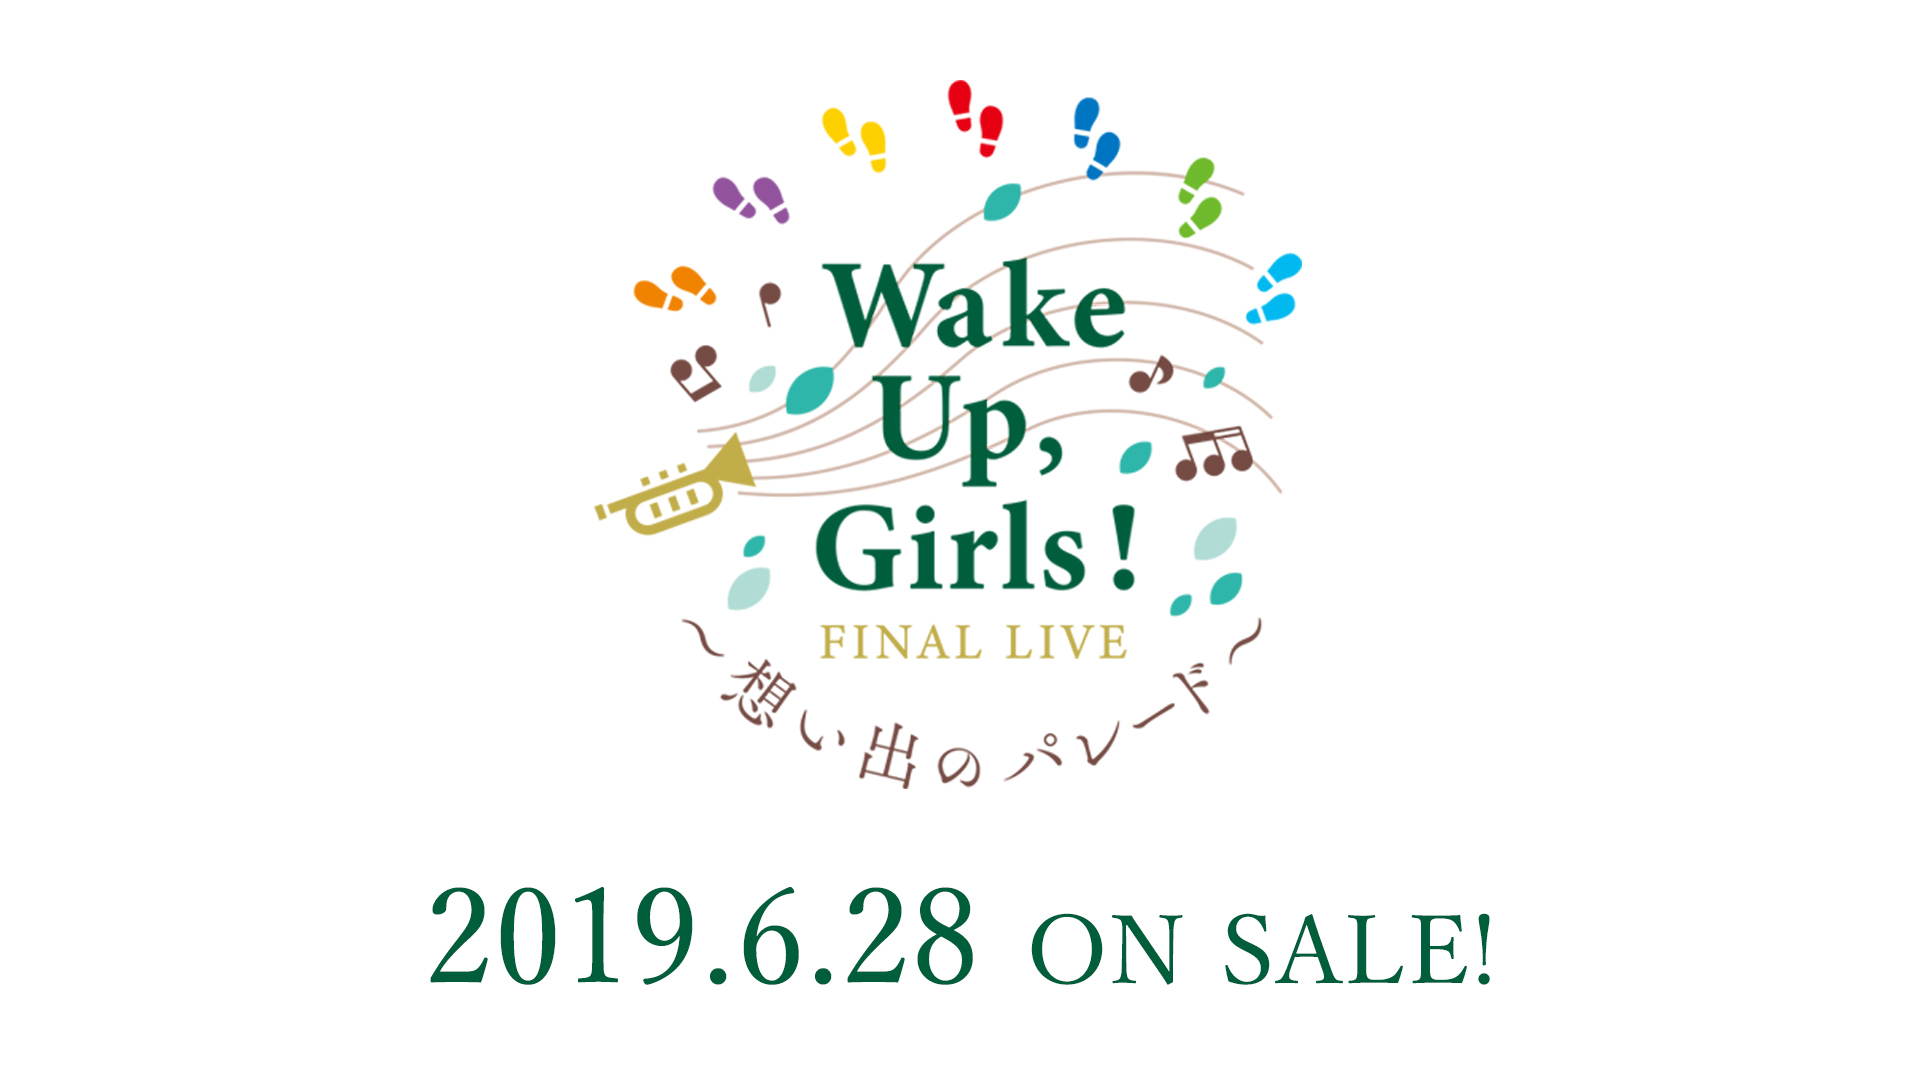 Wake Up, Girls!FINAL LIVE 〜想い出のパレード〜 Blu-ray 2019.6.28 ONSALE!